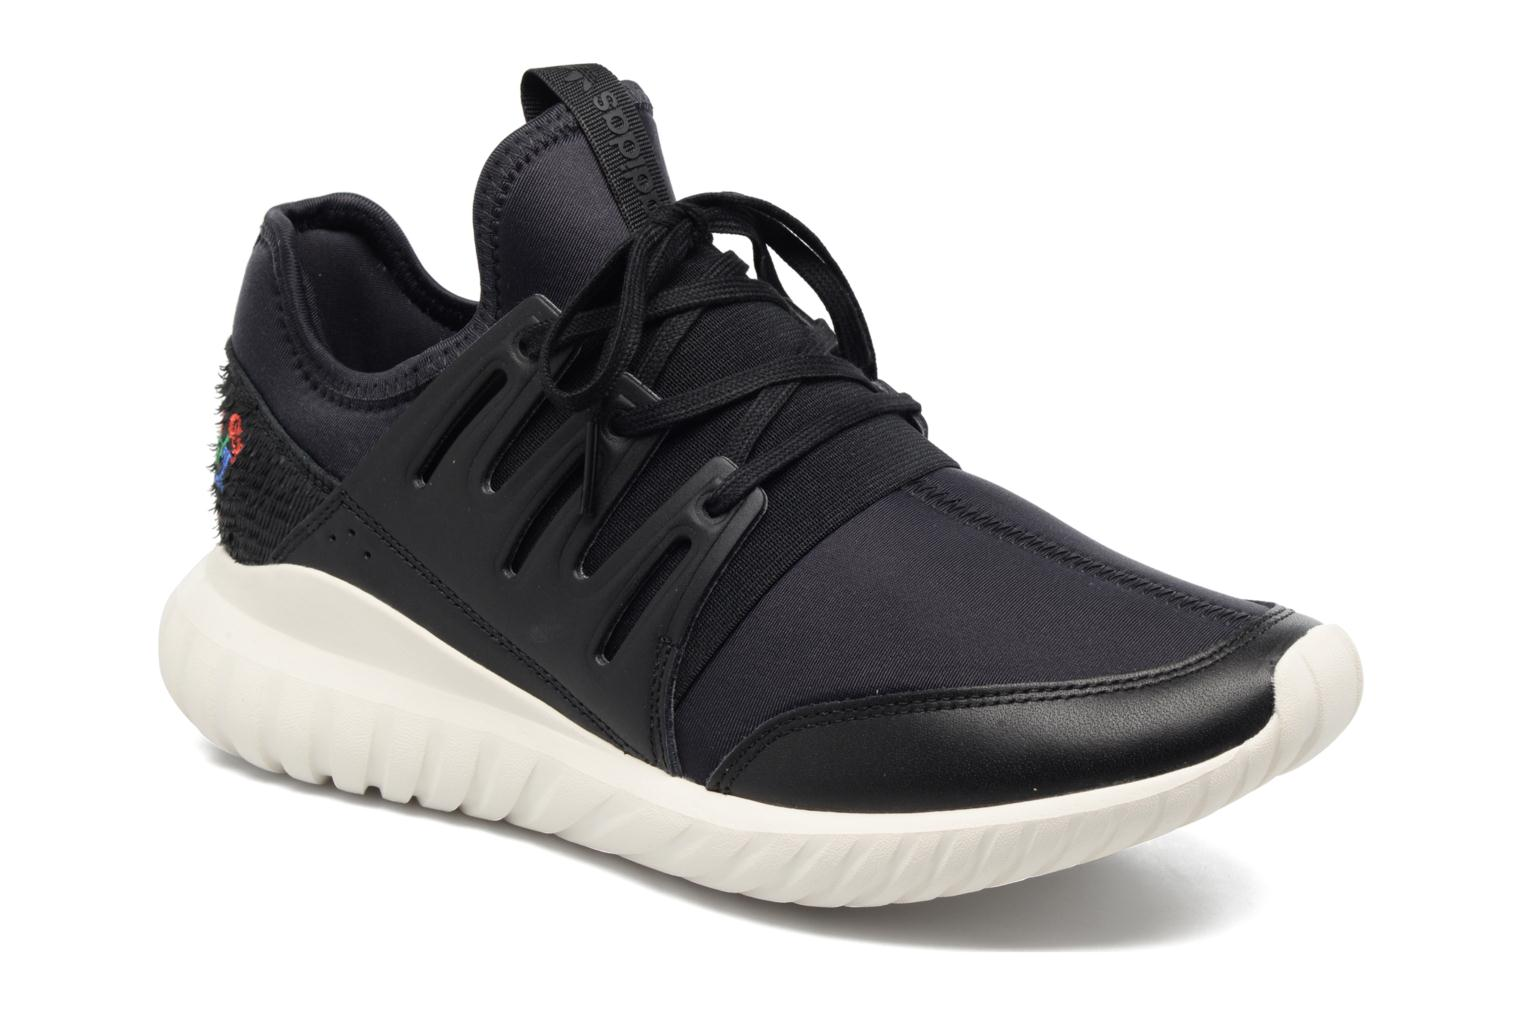 Marques Chaussure homme Adidas Originals homme Tubular Radial Cny Noiess/Noiess/Blacra